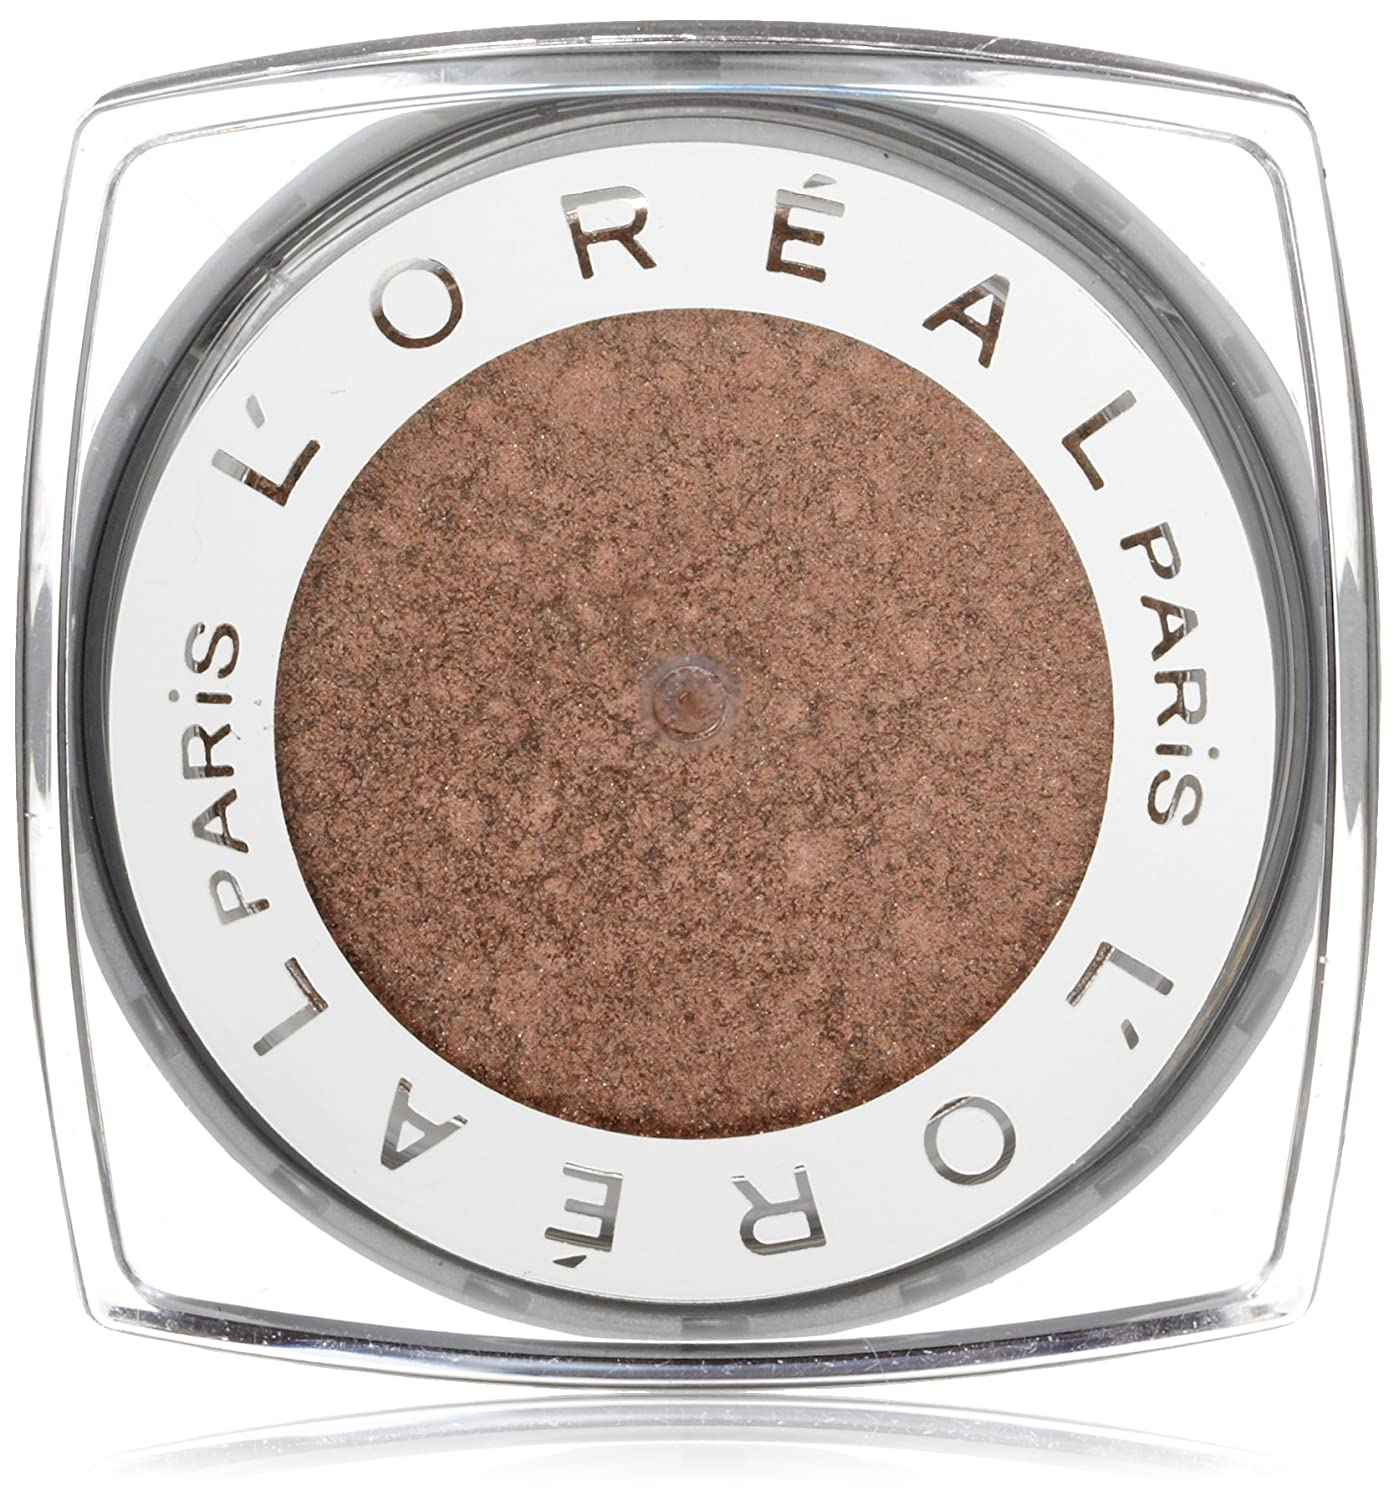 L'Oreal Paris Infallible 24 HR Eye Shadow, Eternal Sunshine, 0.12 Ounces L' Oreal Paris 997 Eternal Sunshine